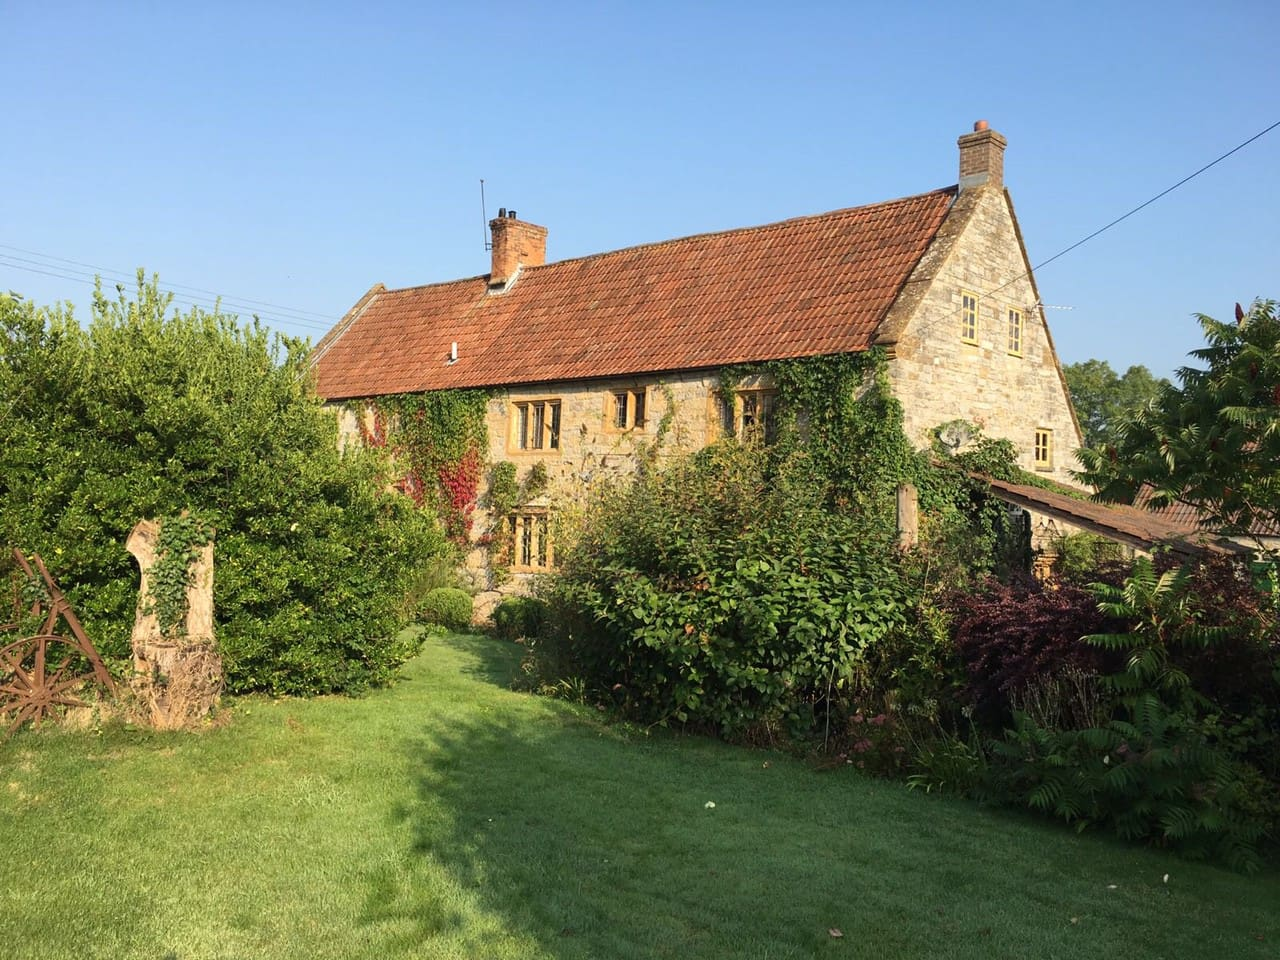 Stunning 16th century farmhouse set in the peaceful Somerset countryside